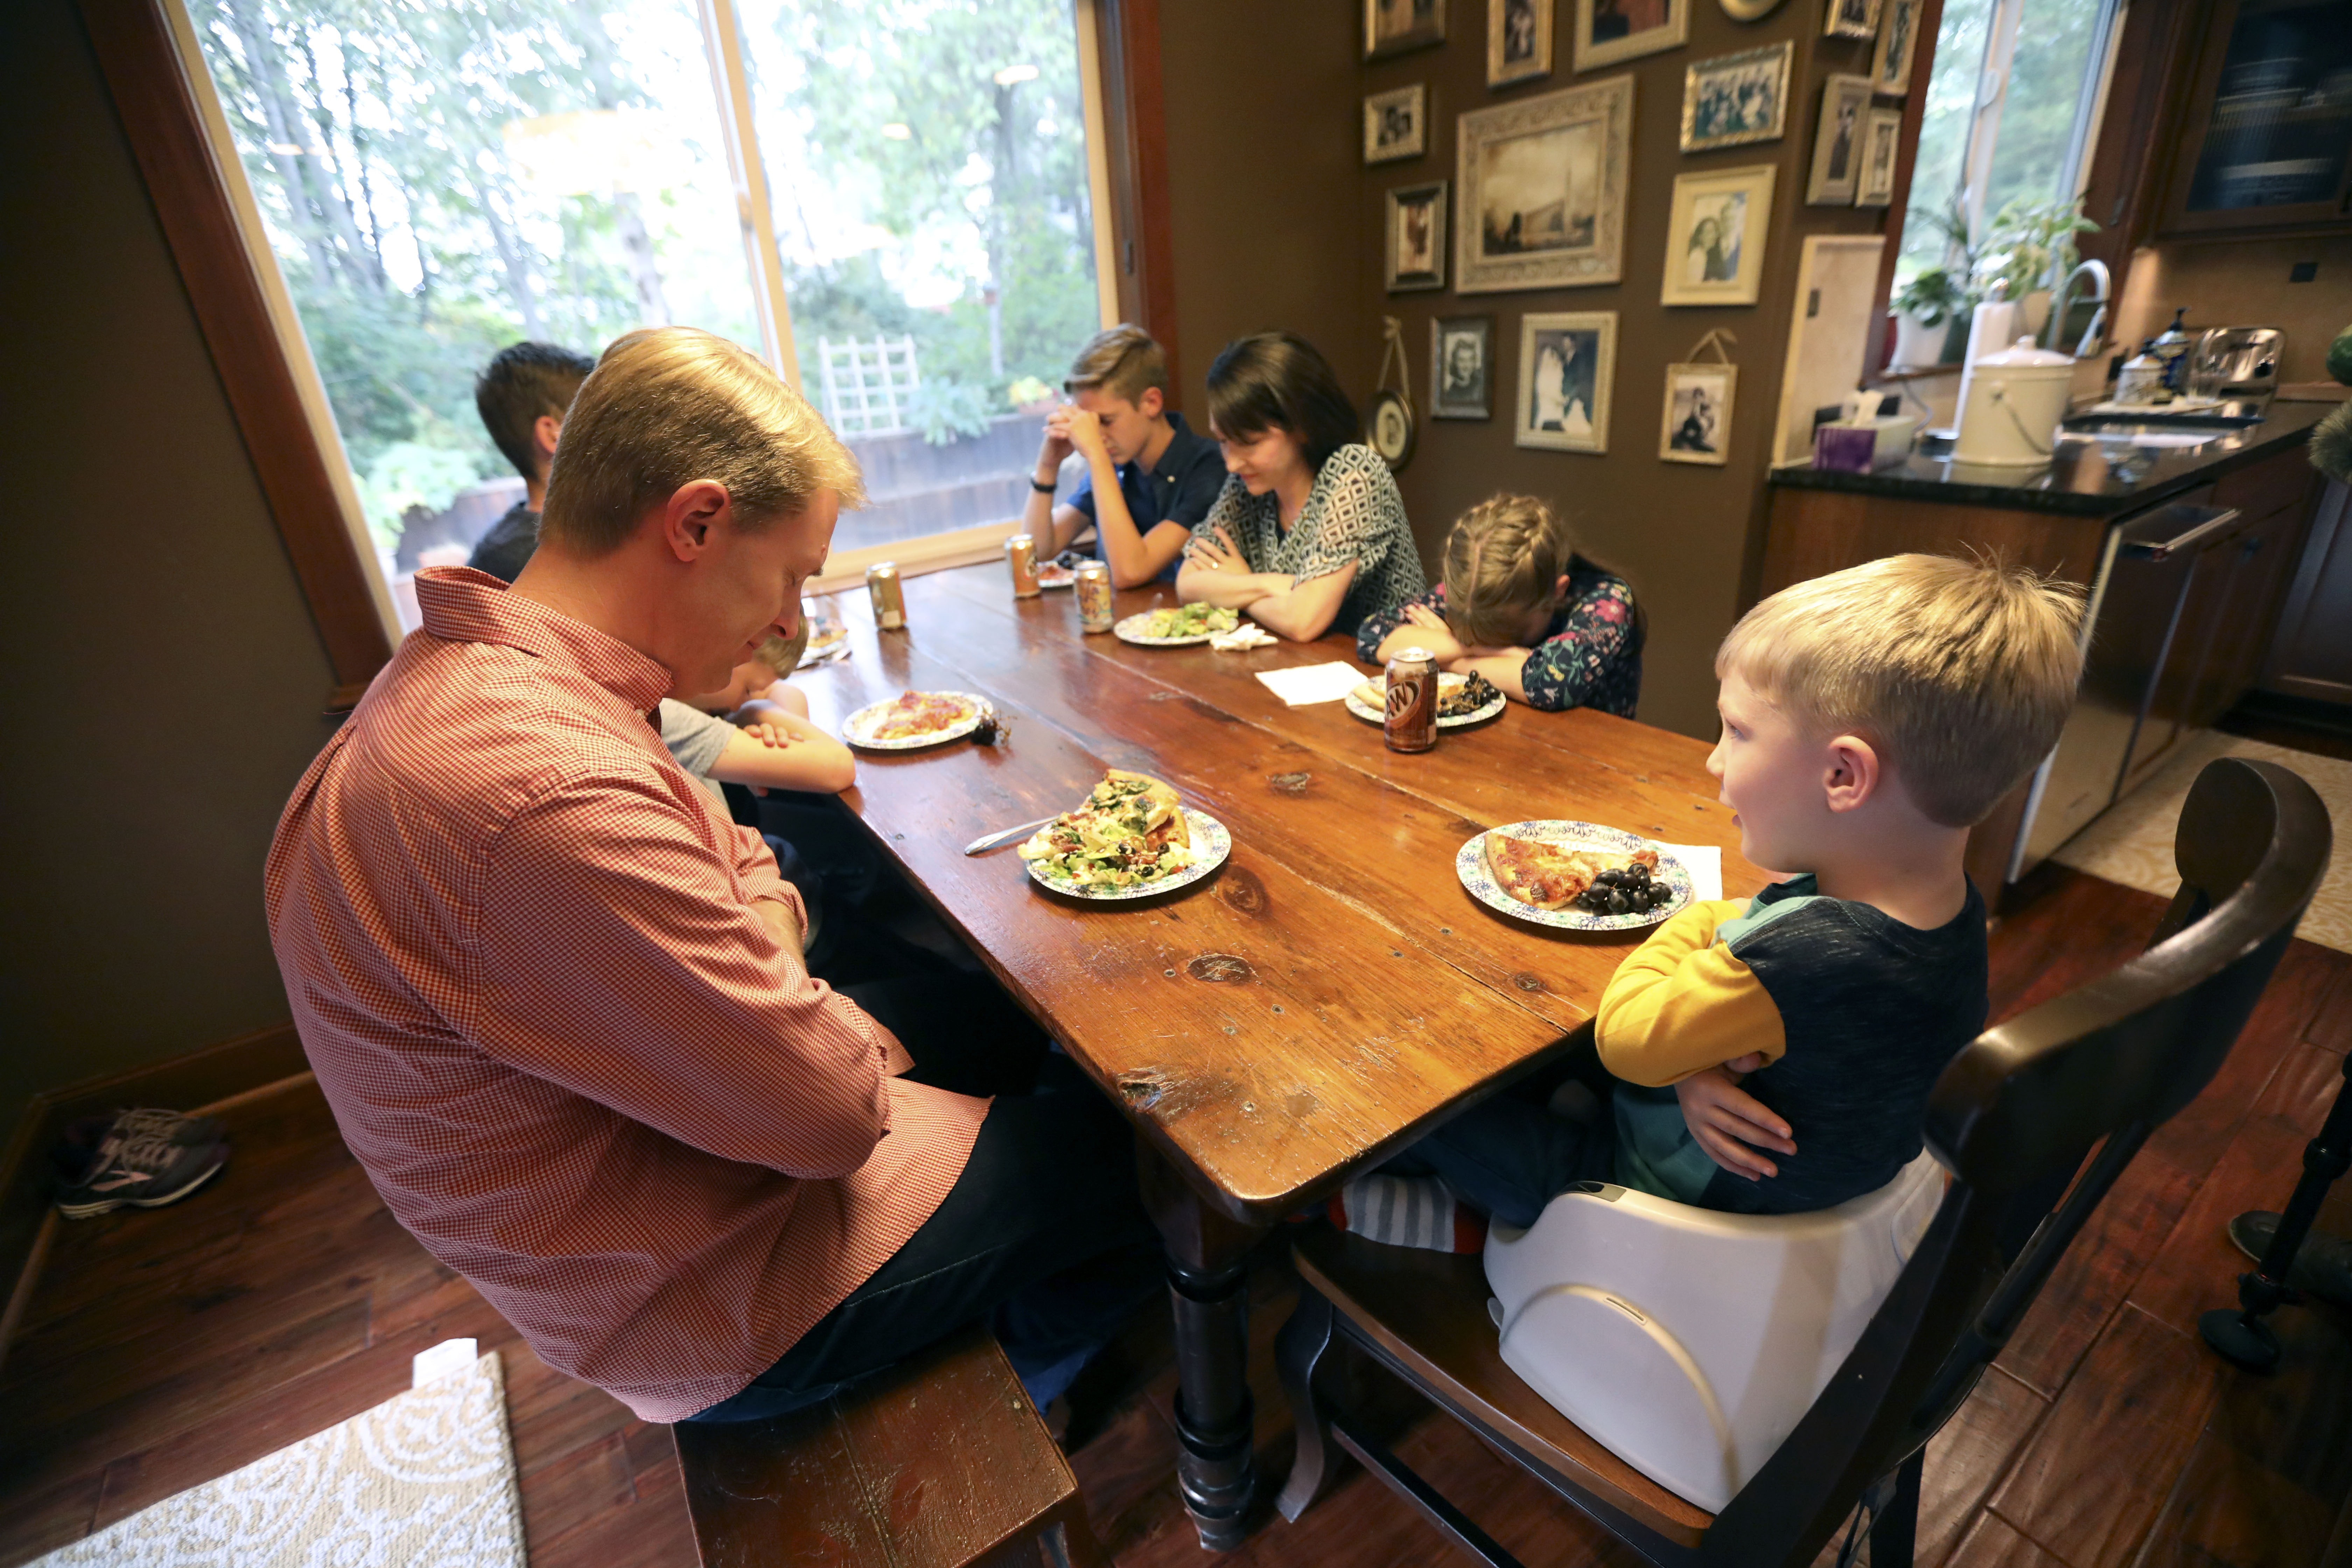 Daniel Allen, right, leads him family in prayer before dinner at home in Renton, Wash., on Friday, Sept. 14, 2018. His father, Justin Allen, is on the left. Jonathan, Alexis and Emilia Allen are on the right side of the table.